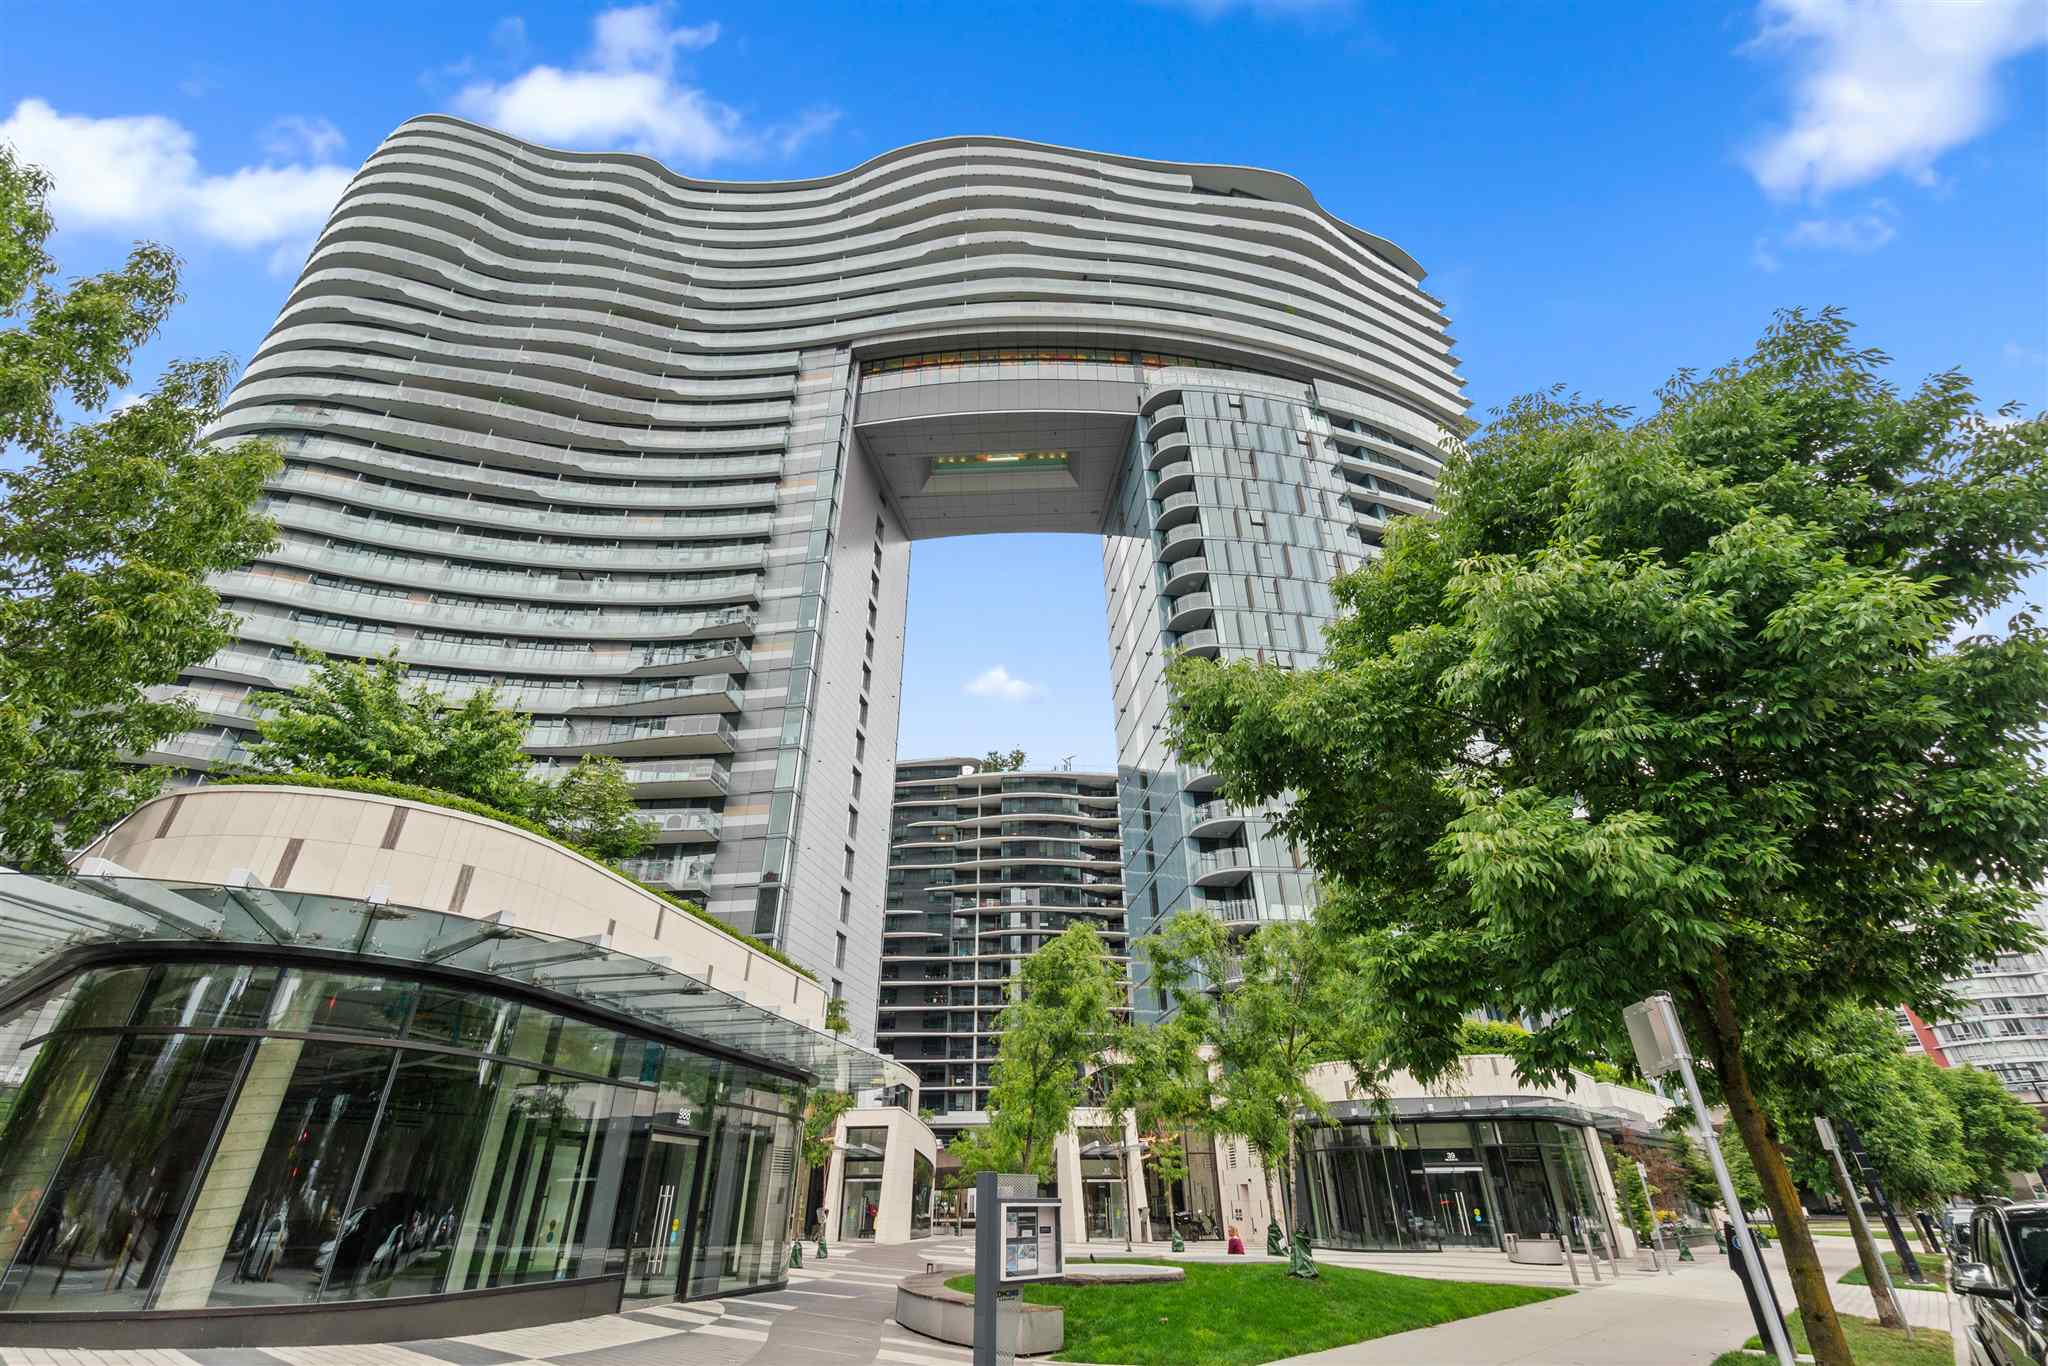 202 89 NELSON STREET - Yaletown Apartment/Condo for sale, 1 Bedroom (R2593457) - #1